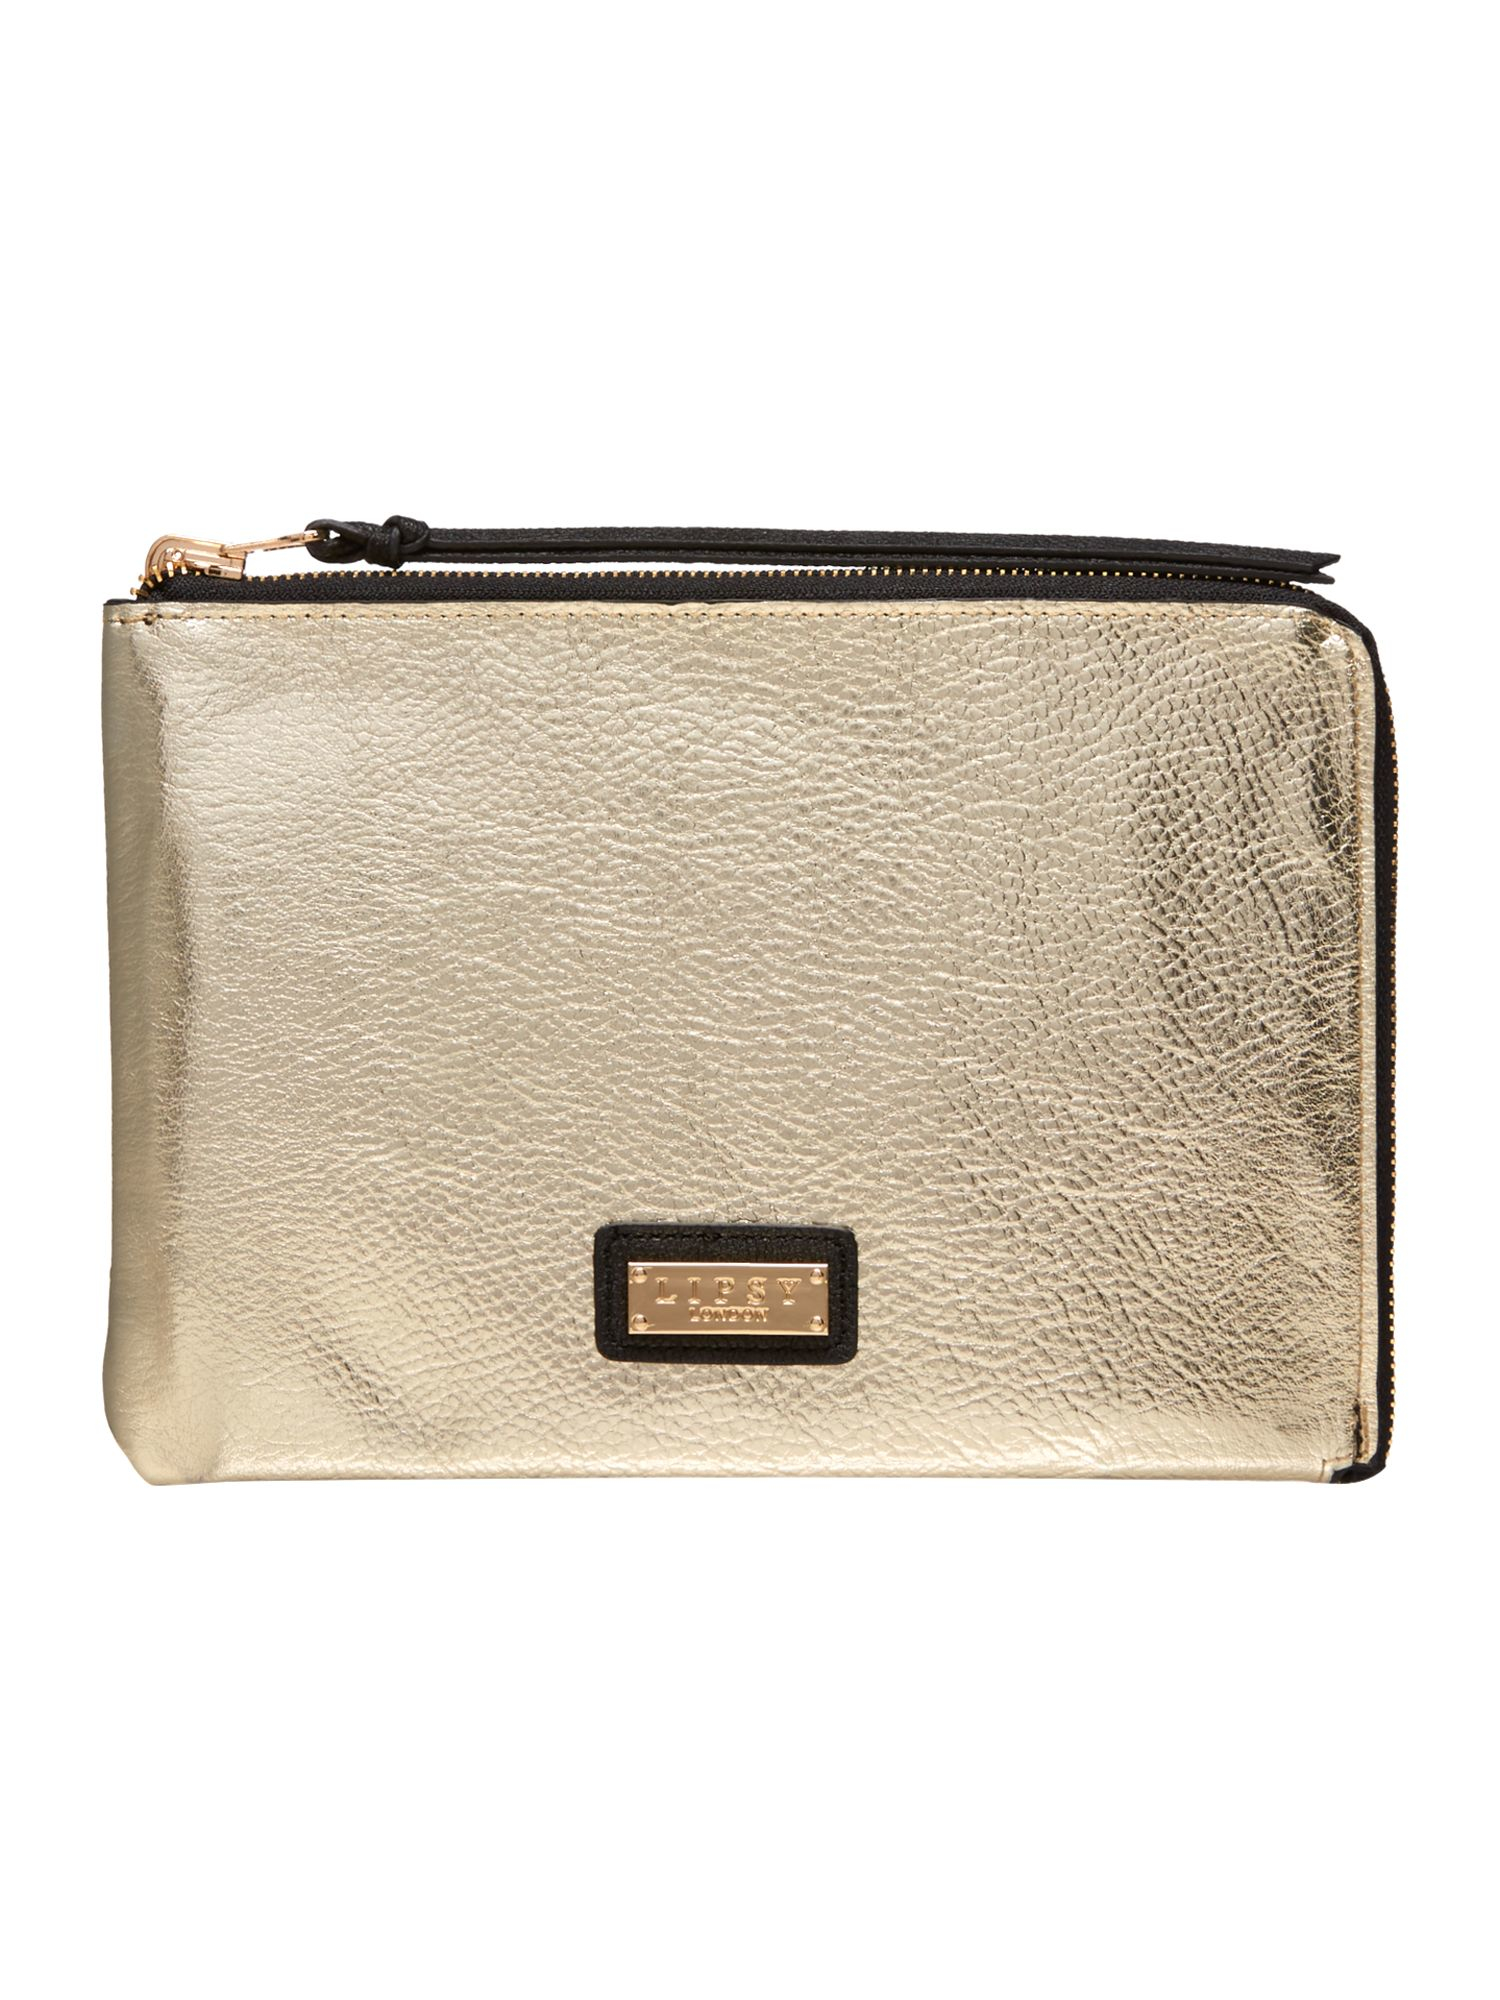 About product and suppliers: hereuloadu5.ga offers 11, gold clutch bag products. About 38% of these are evening bags, 12% are handbags, and 2% are cosmetic bags & cases.